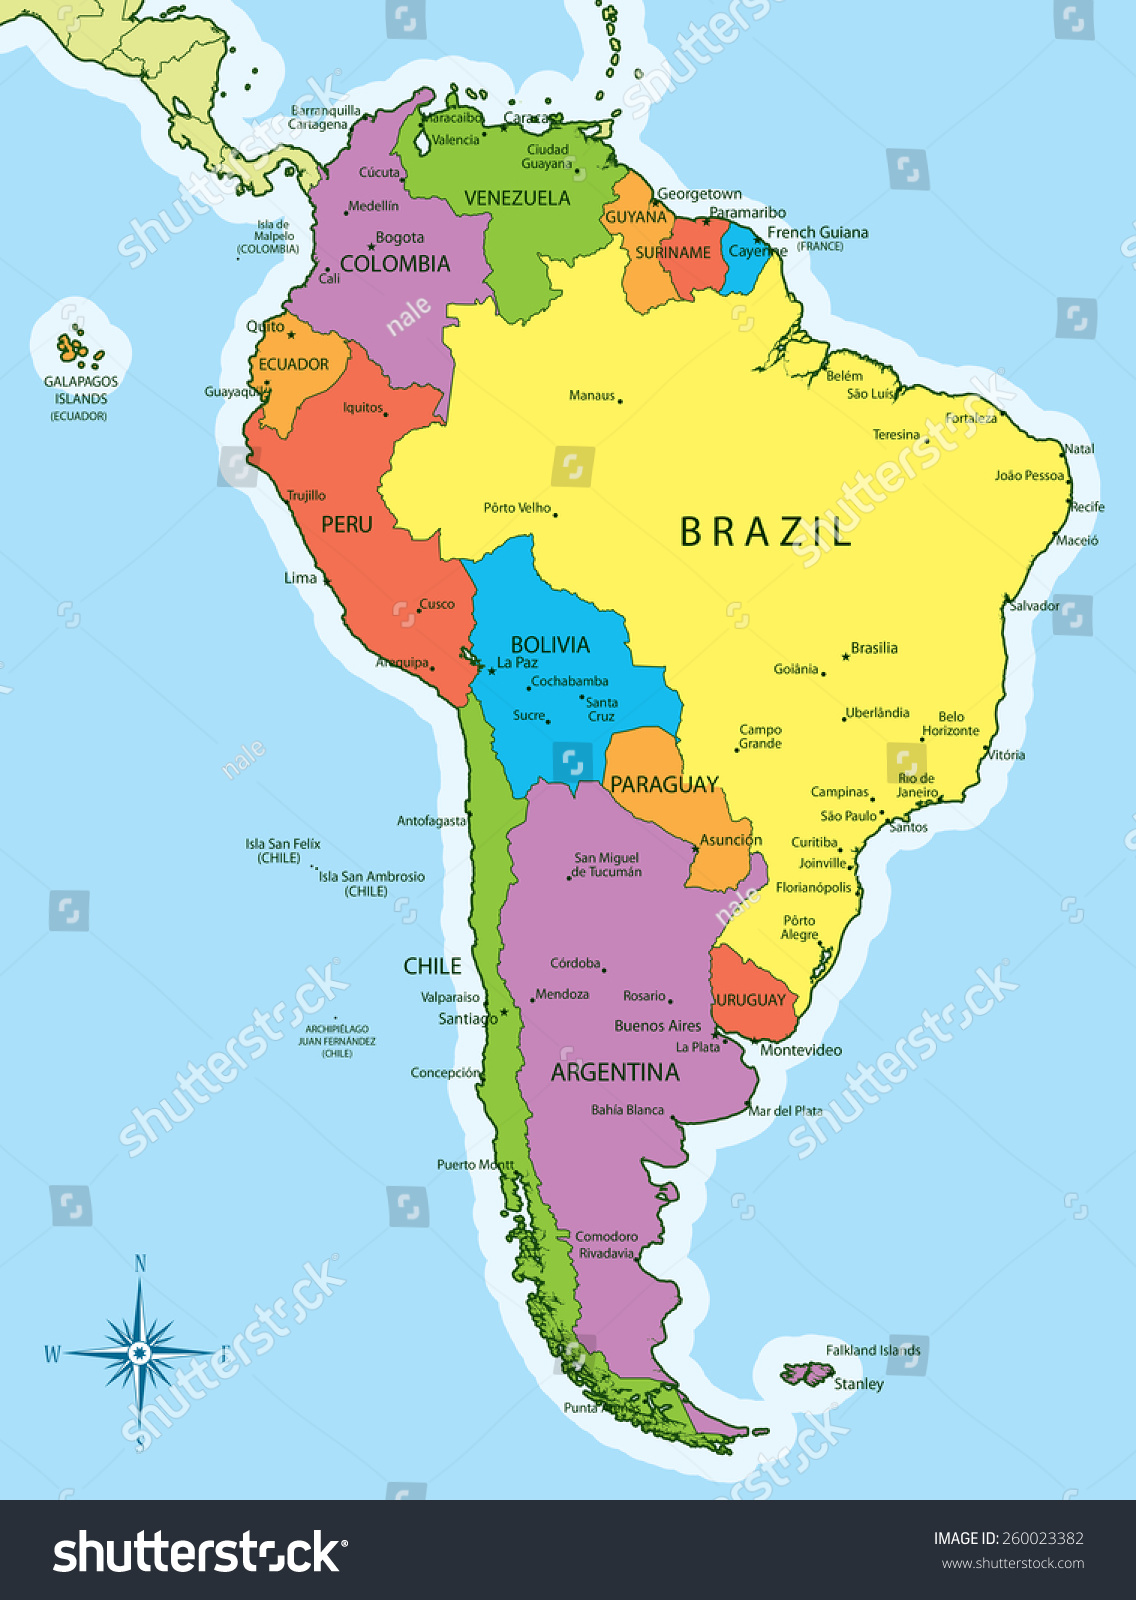 Vector illustration south america map countries stock for What color is south america